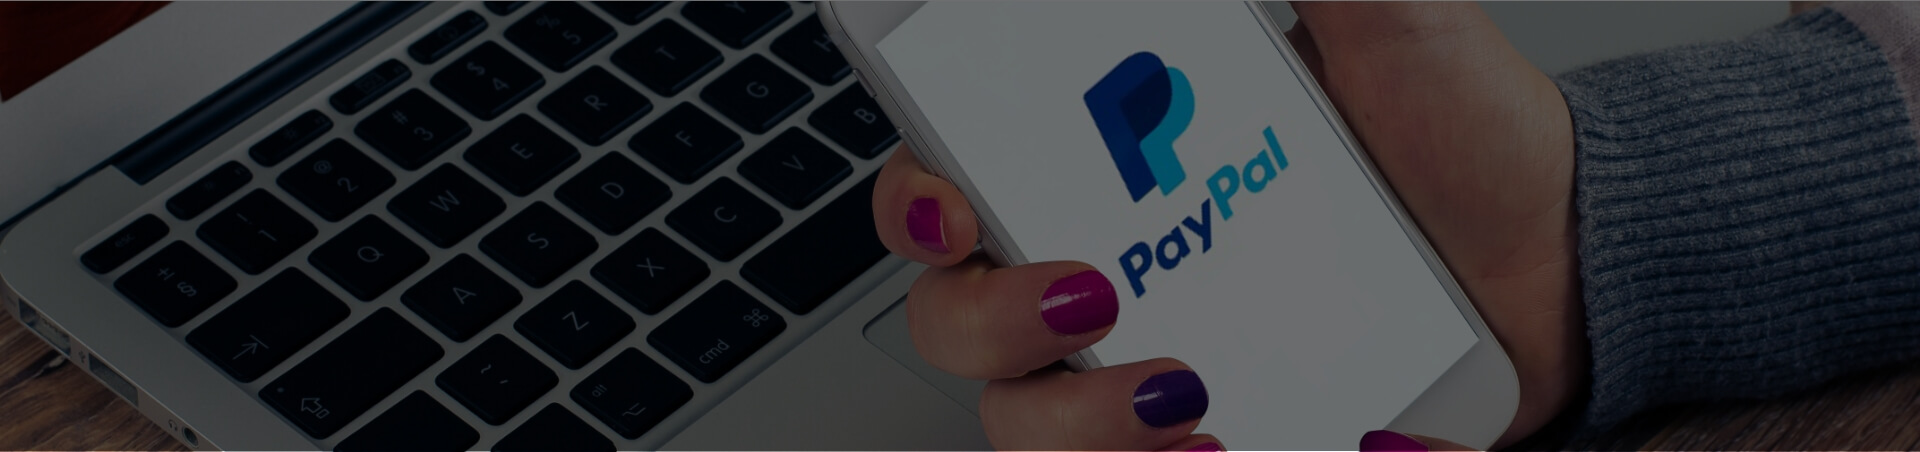 paypal-integration-services-banner